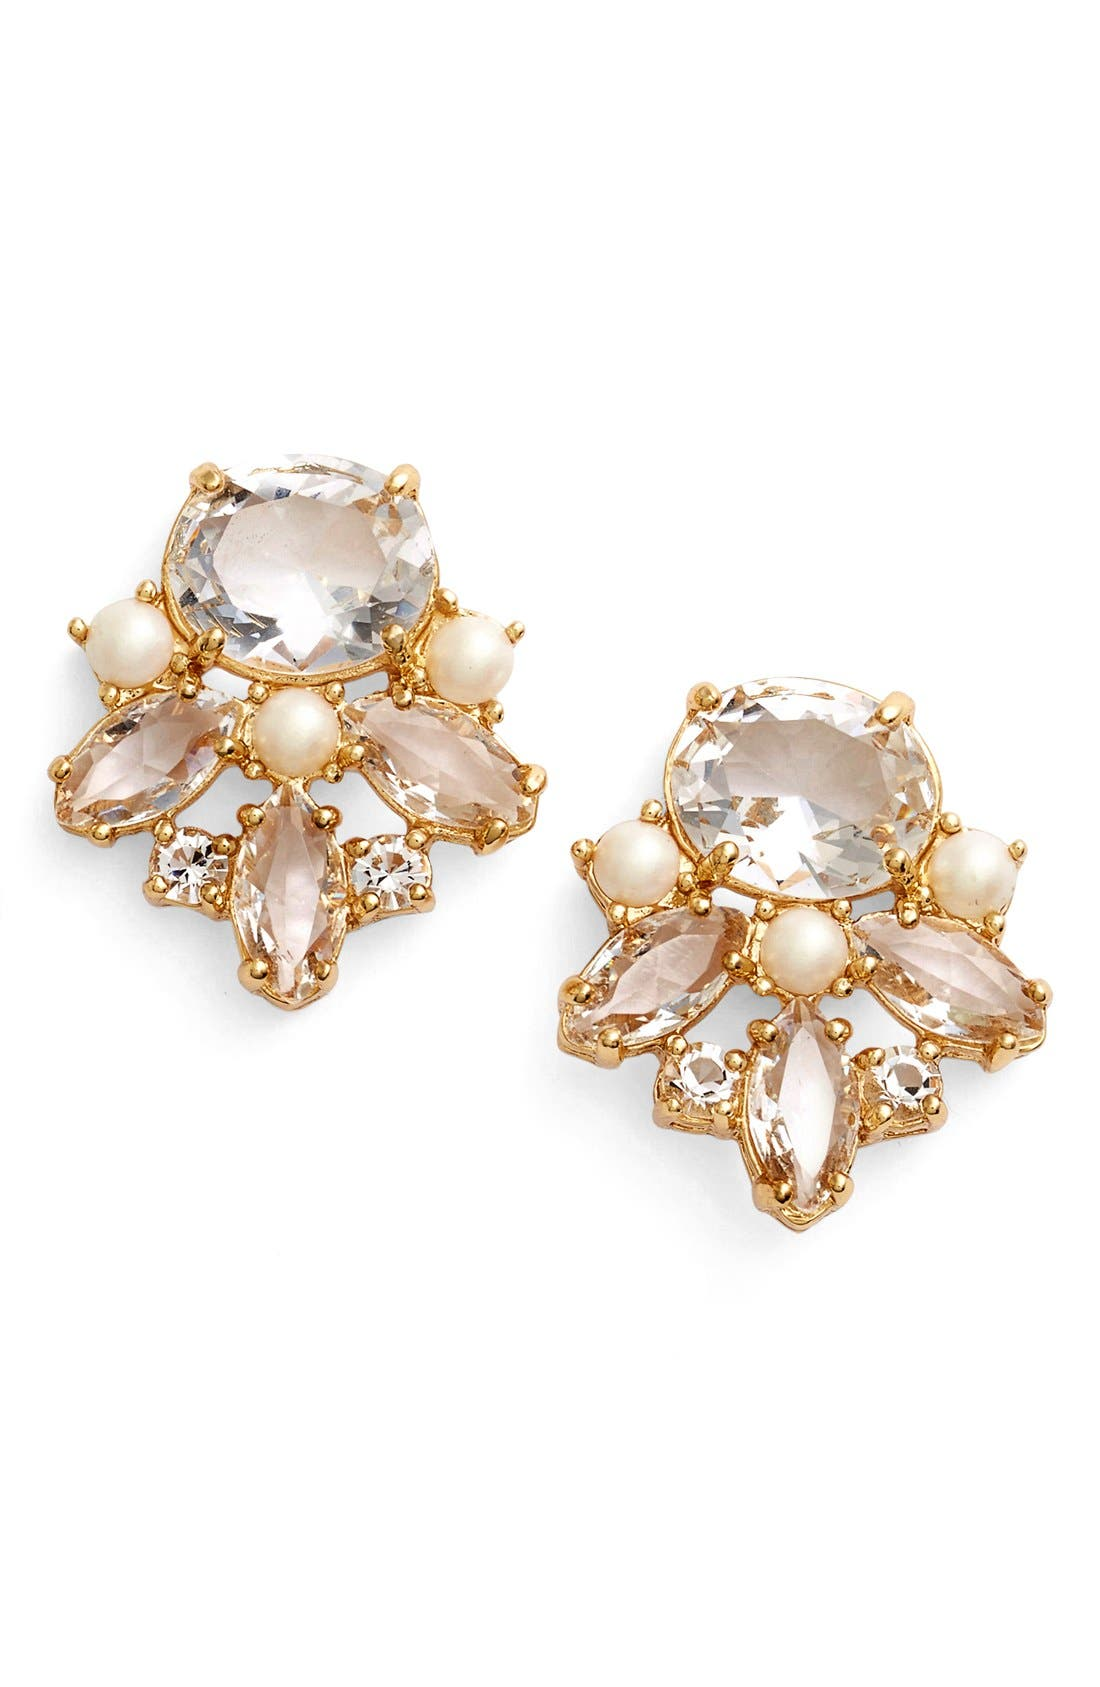 Main Image - kate spade new york 'chantilly' cluster stud earrings